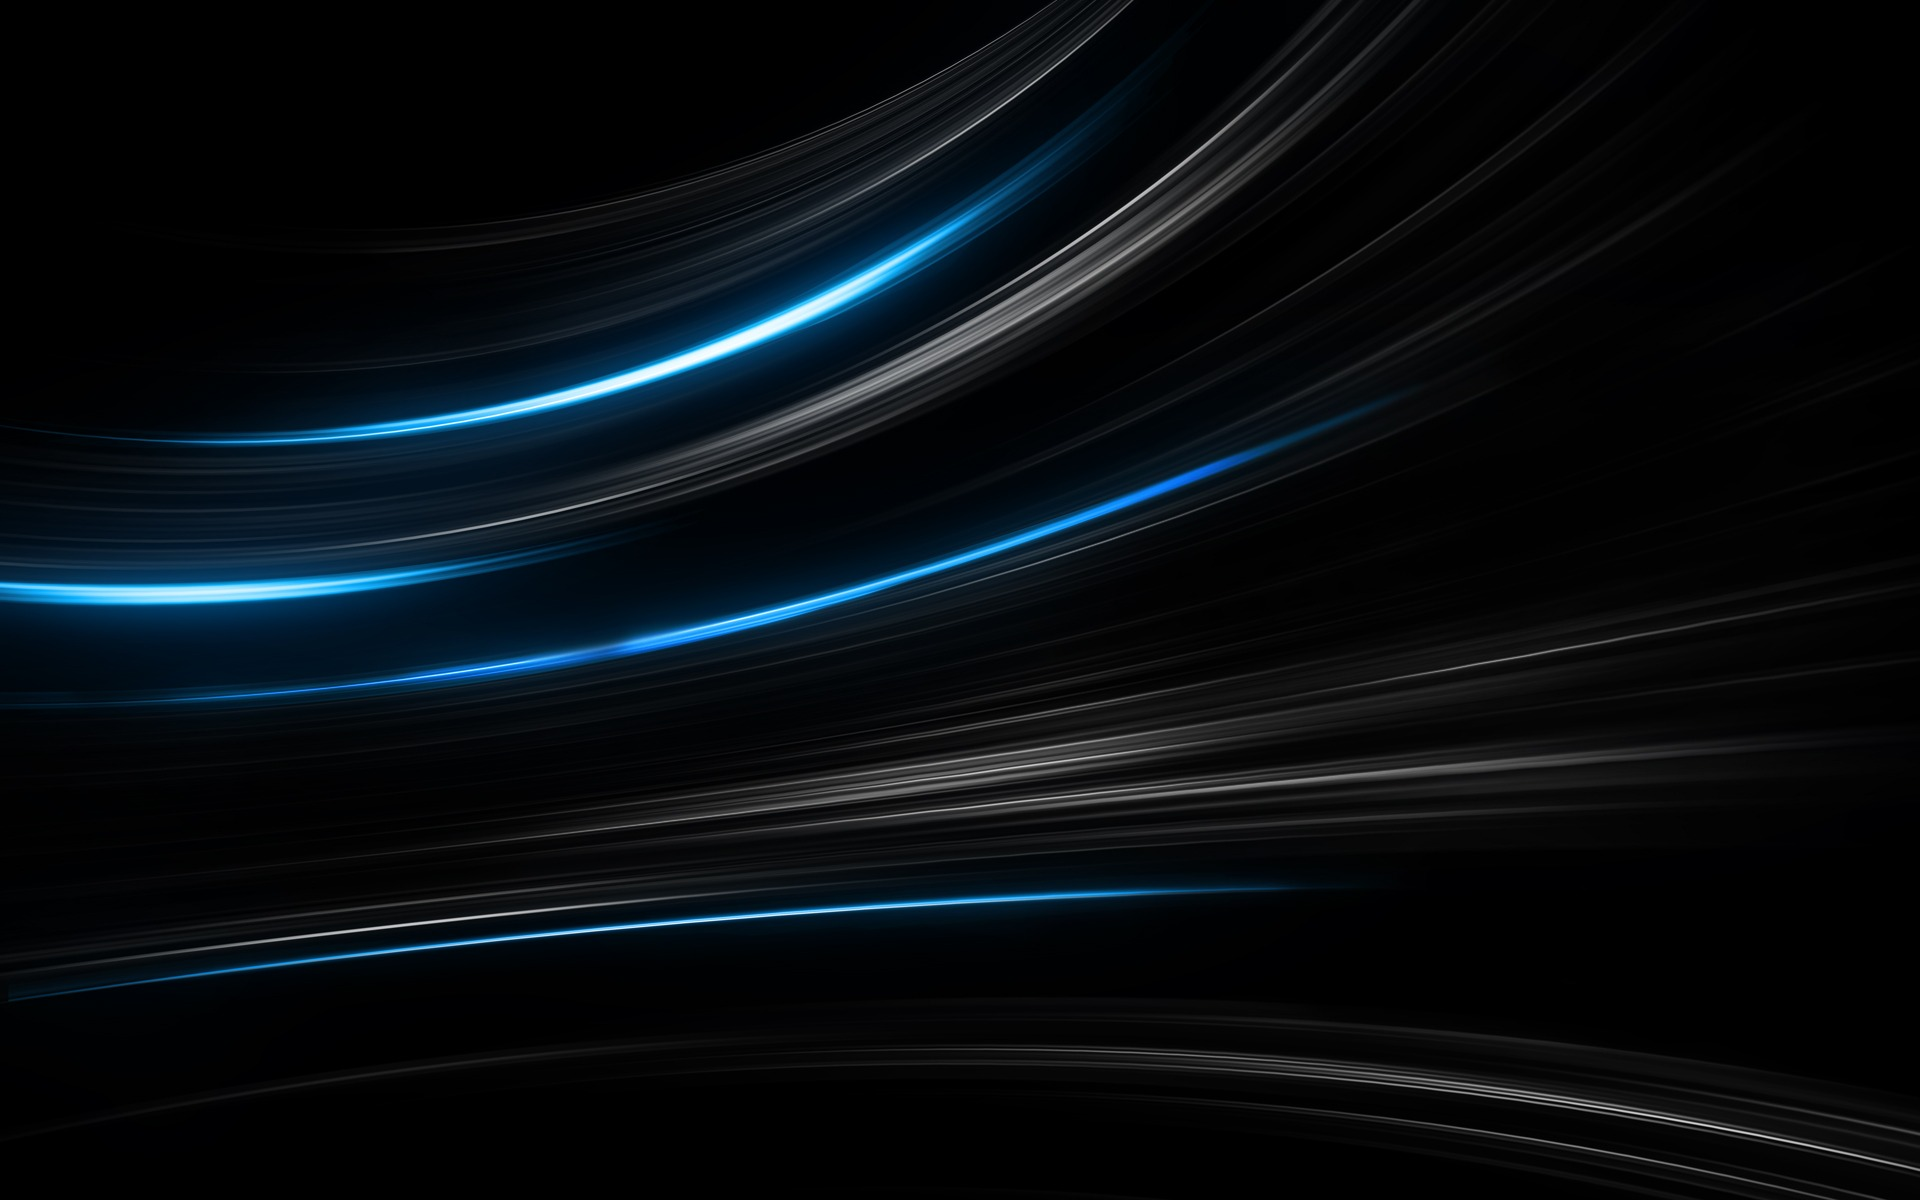 Black blue wallpaper abstract 3d wallpapers for free download